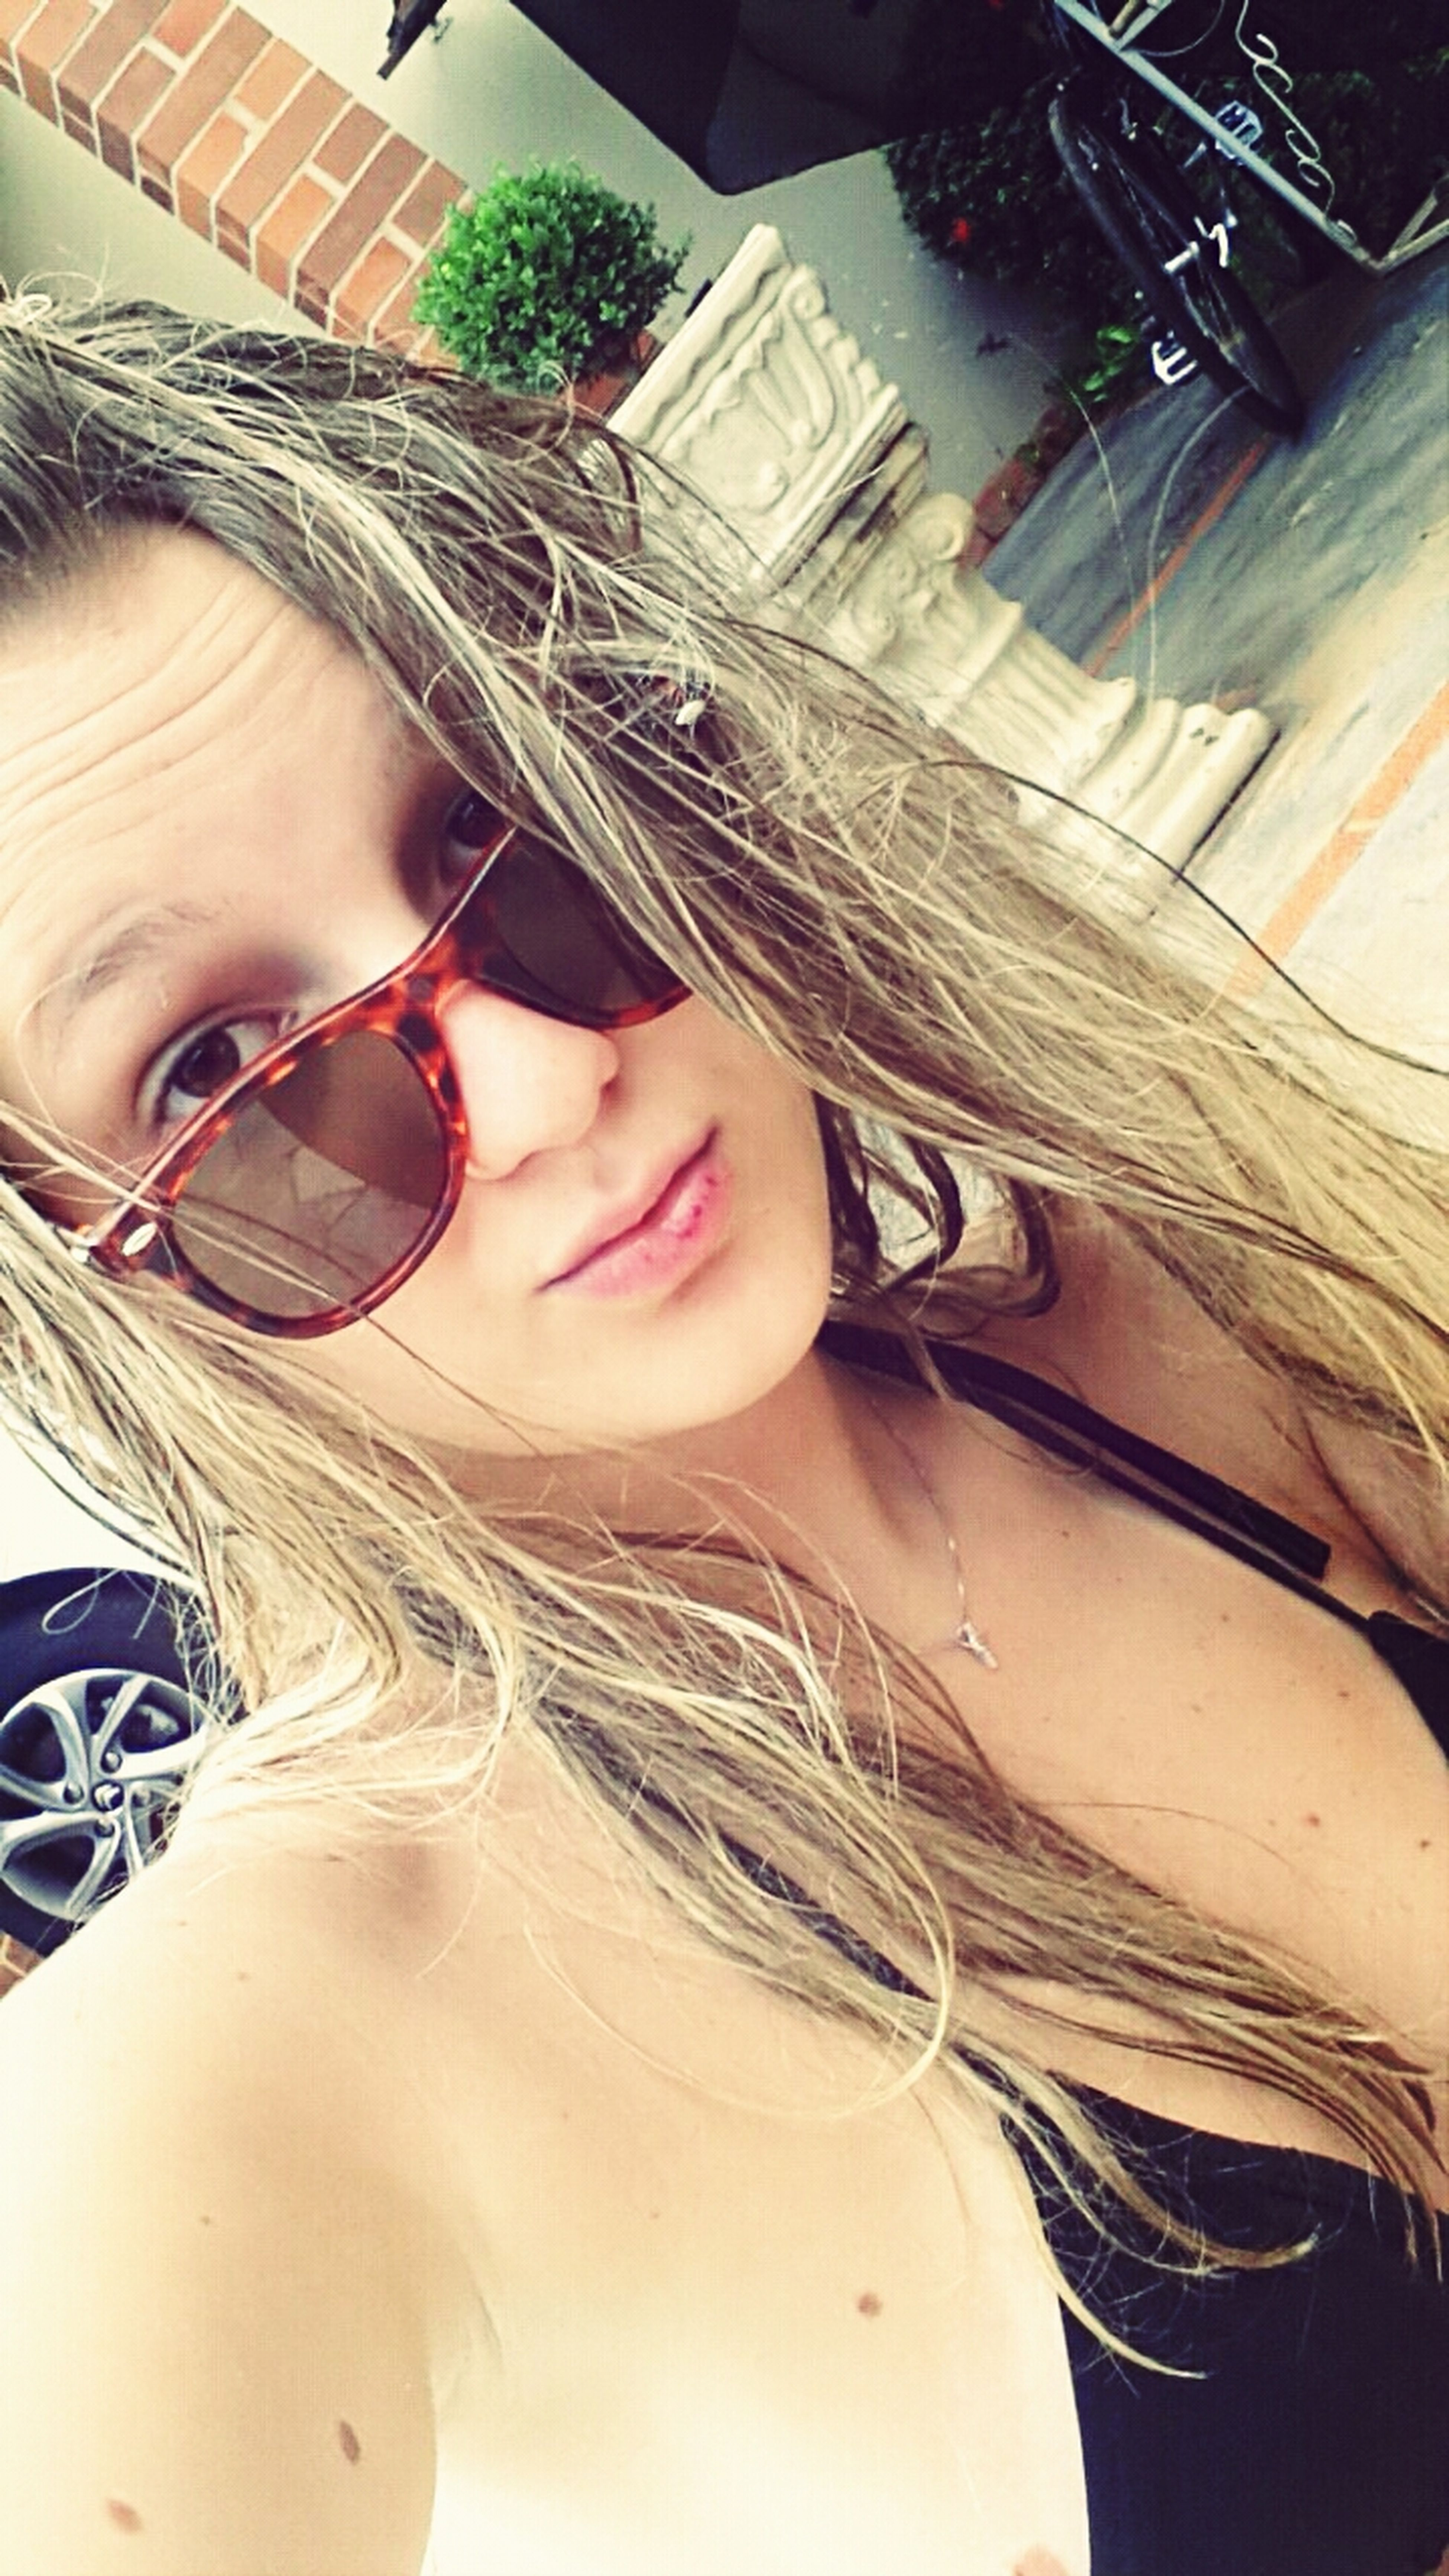 bad hair day after pool! love this city, love the sun, love Brazil Brazil Sun Badhairday